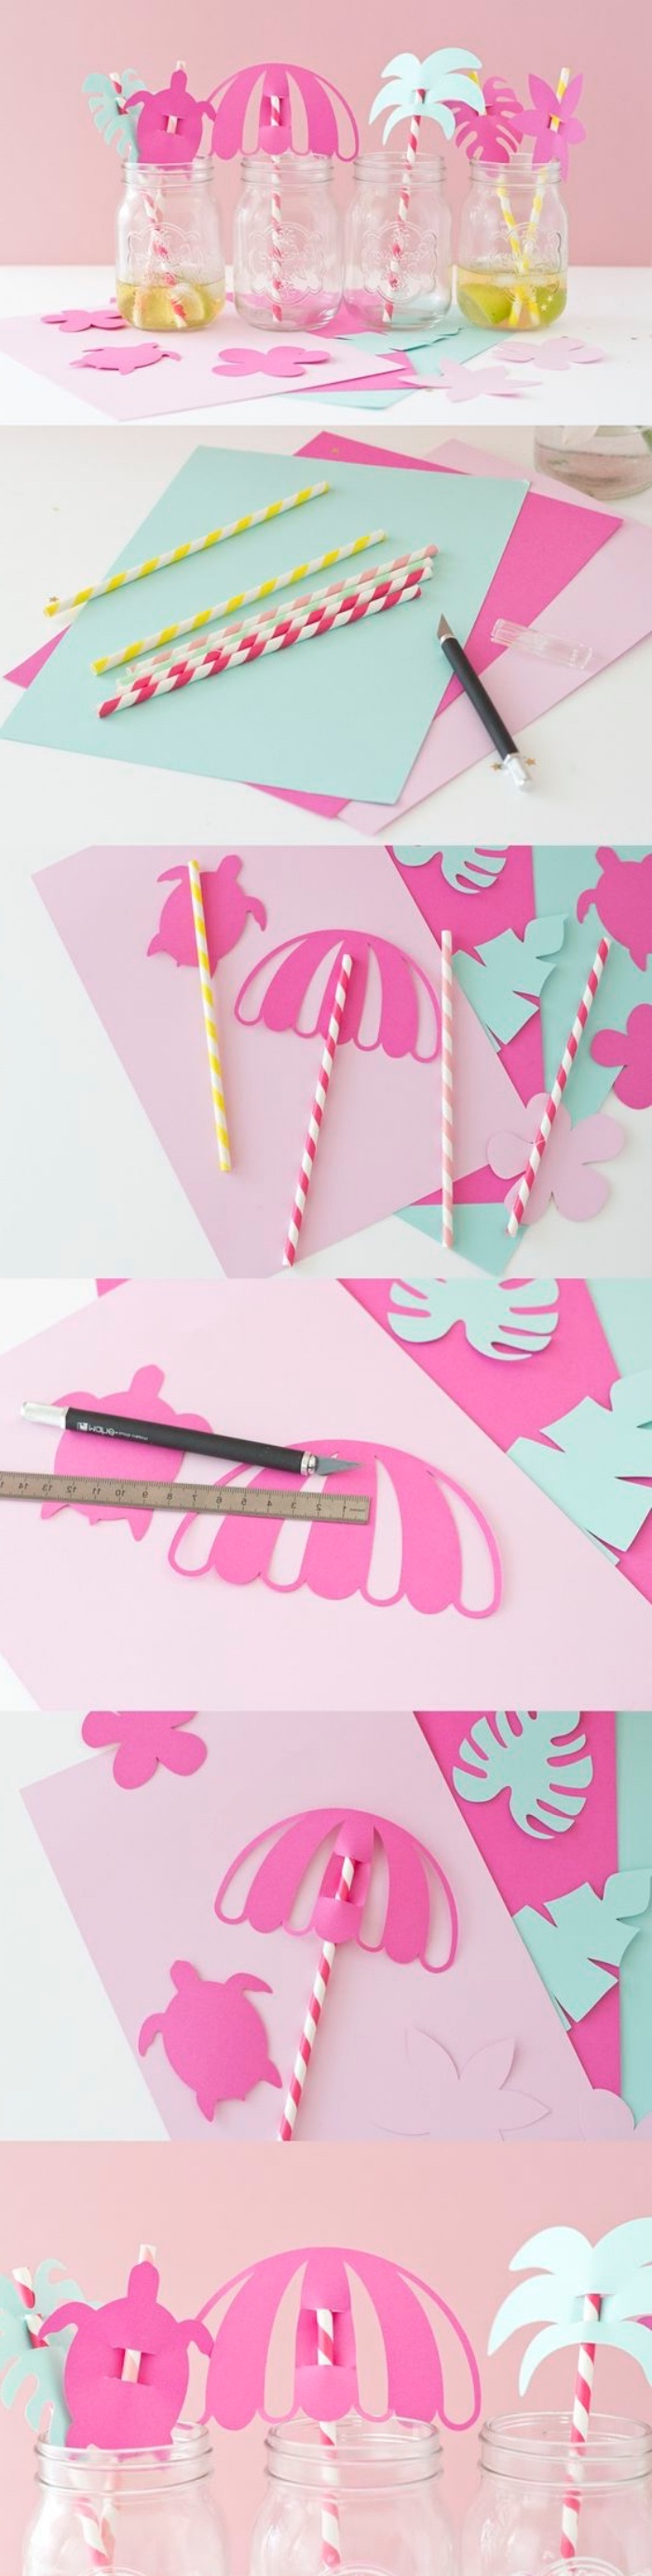 cocktail glass decorations, made of paper, cool diy projects, pink and green paper, paper straws